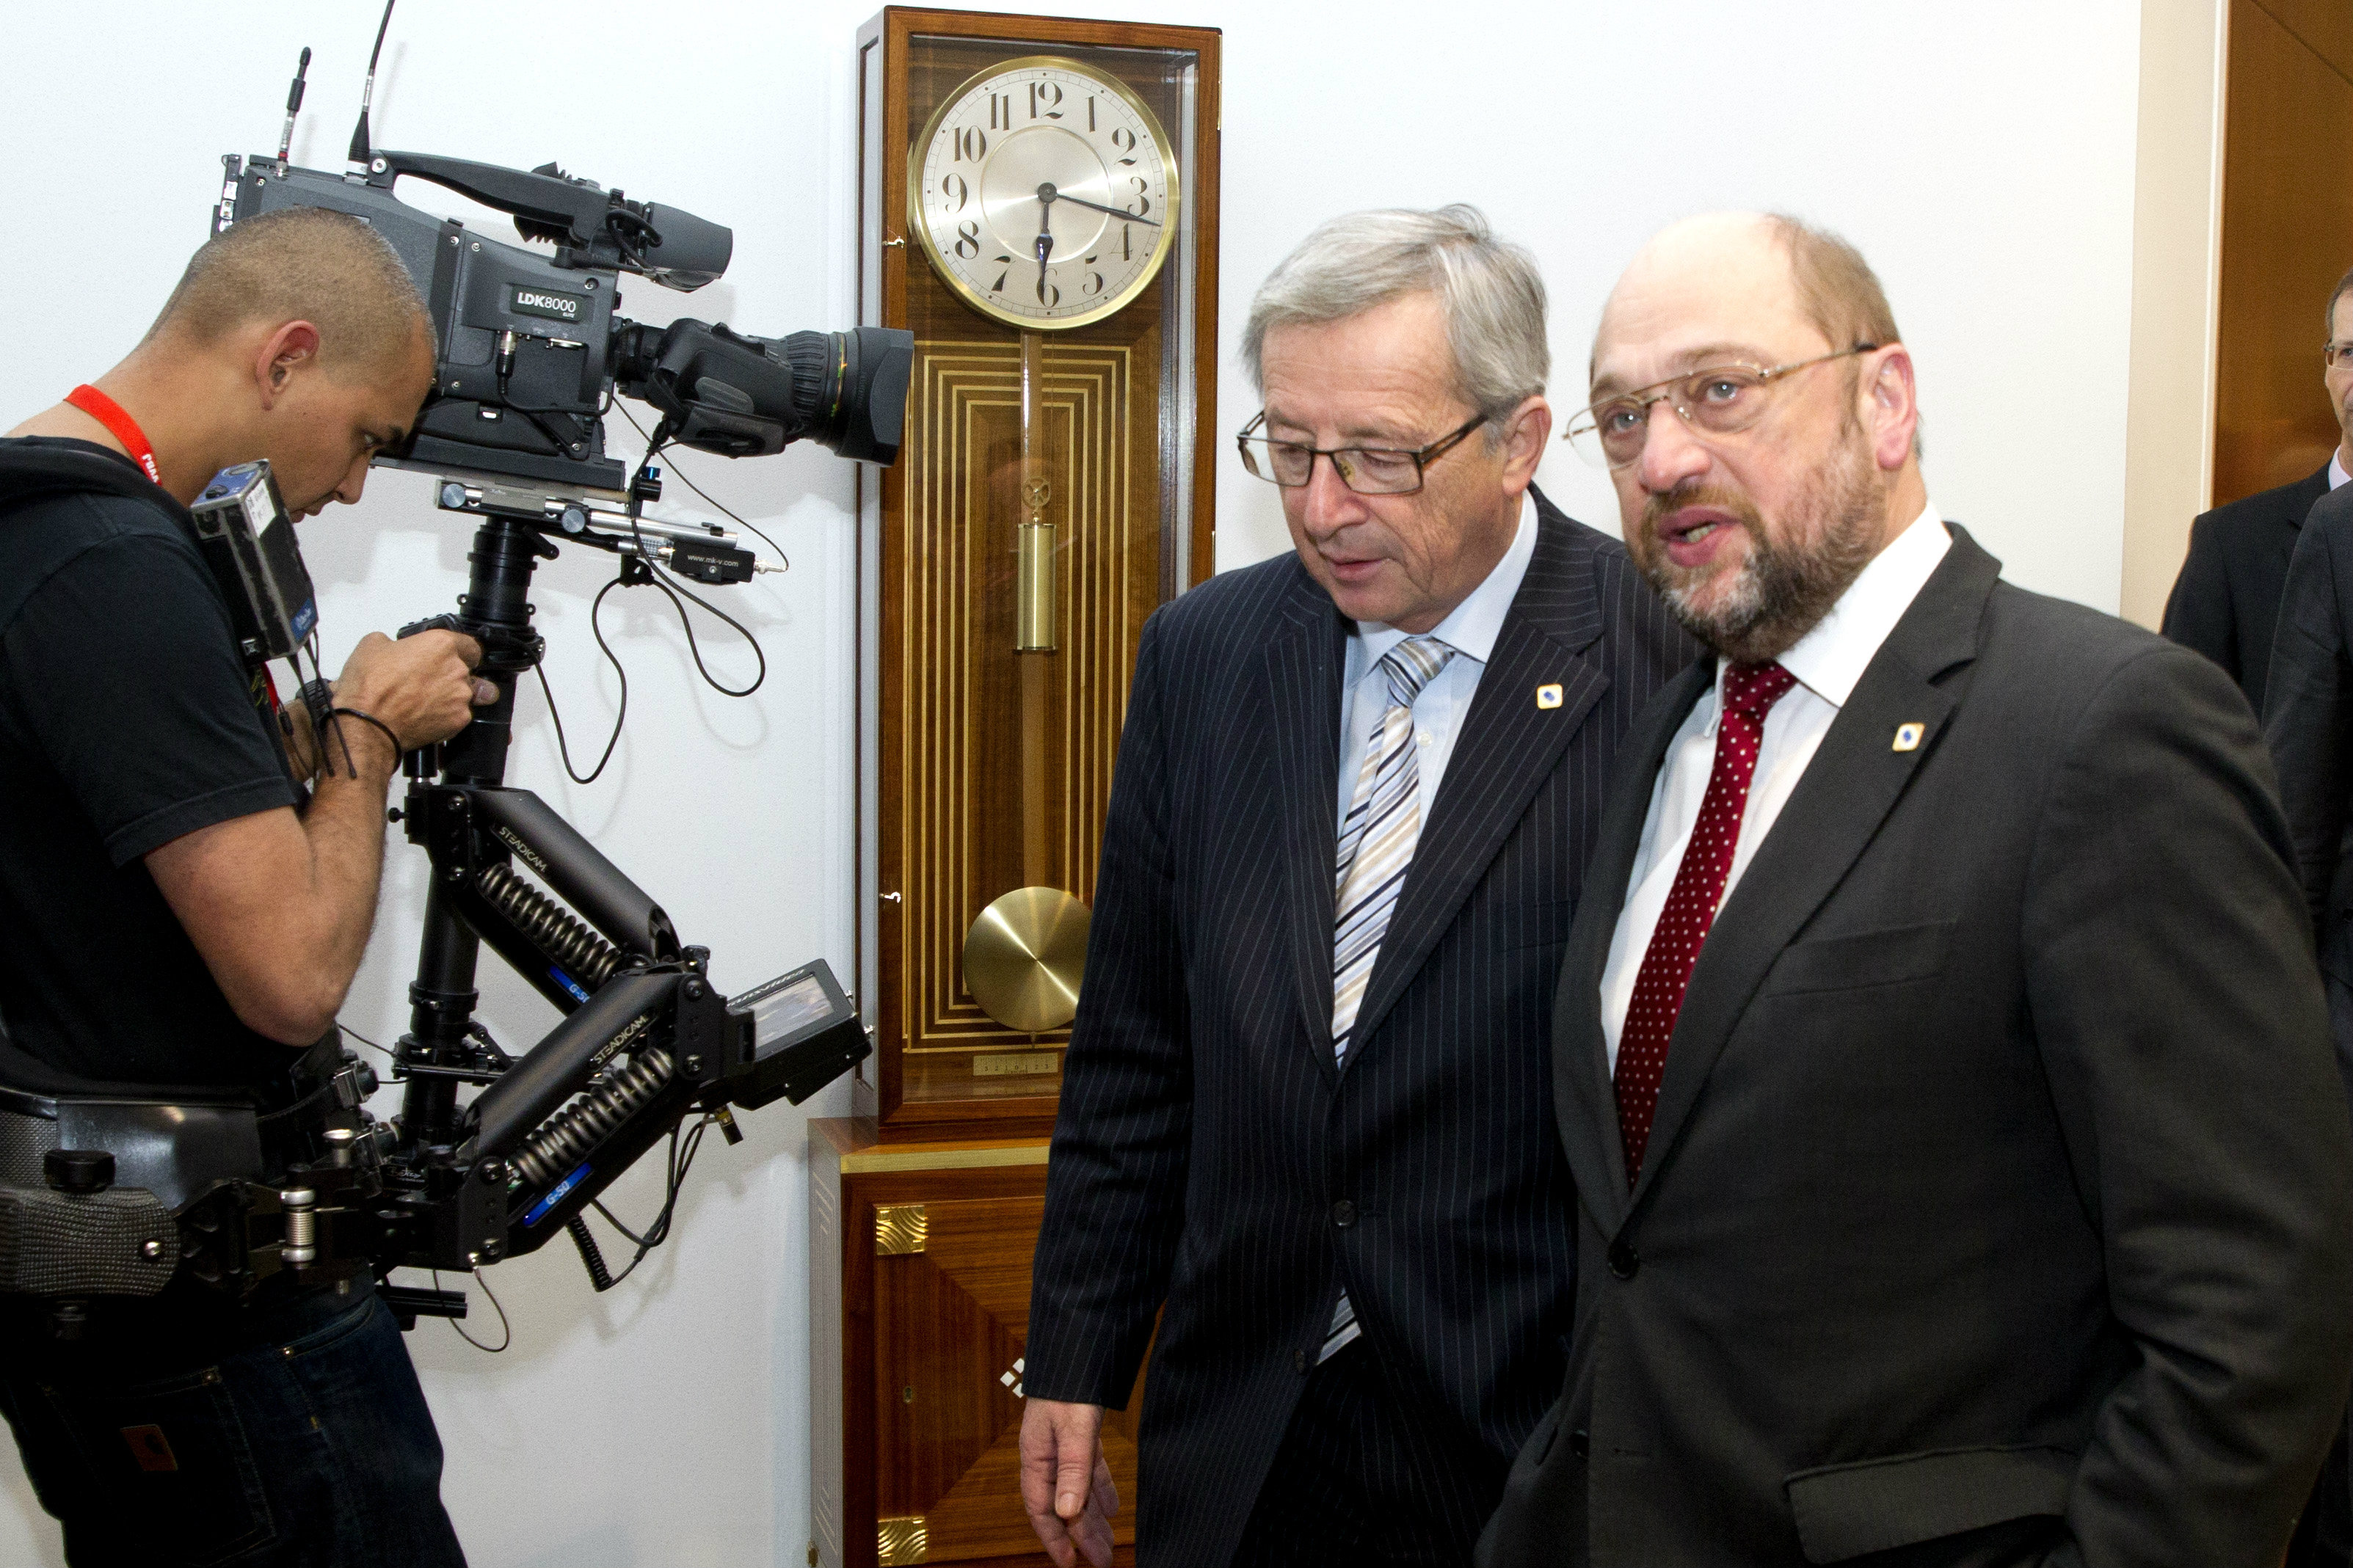 Former Luxembourg Prime Minister Jean-Claude Juncker and European Parliament President Martin Schulz. December 2012 [The Council of the European Union]